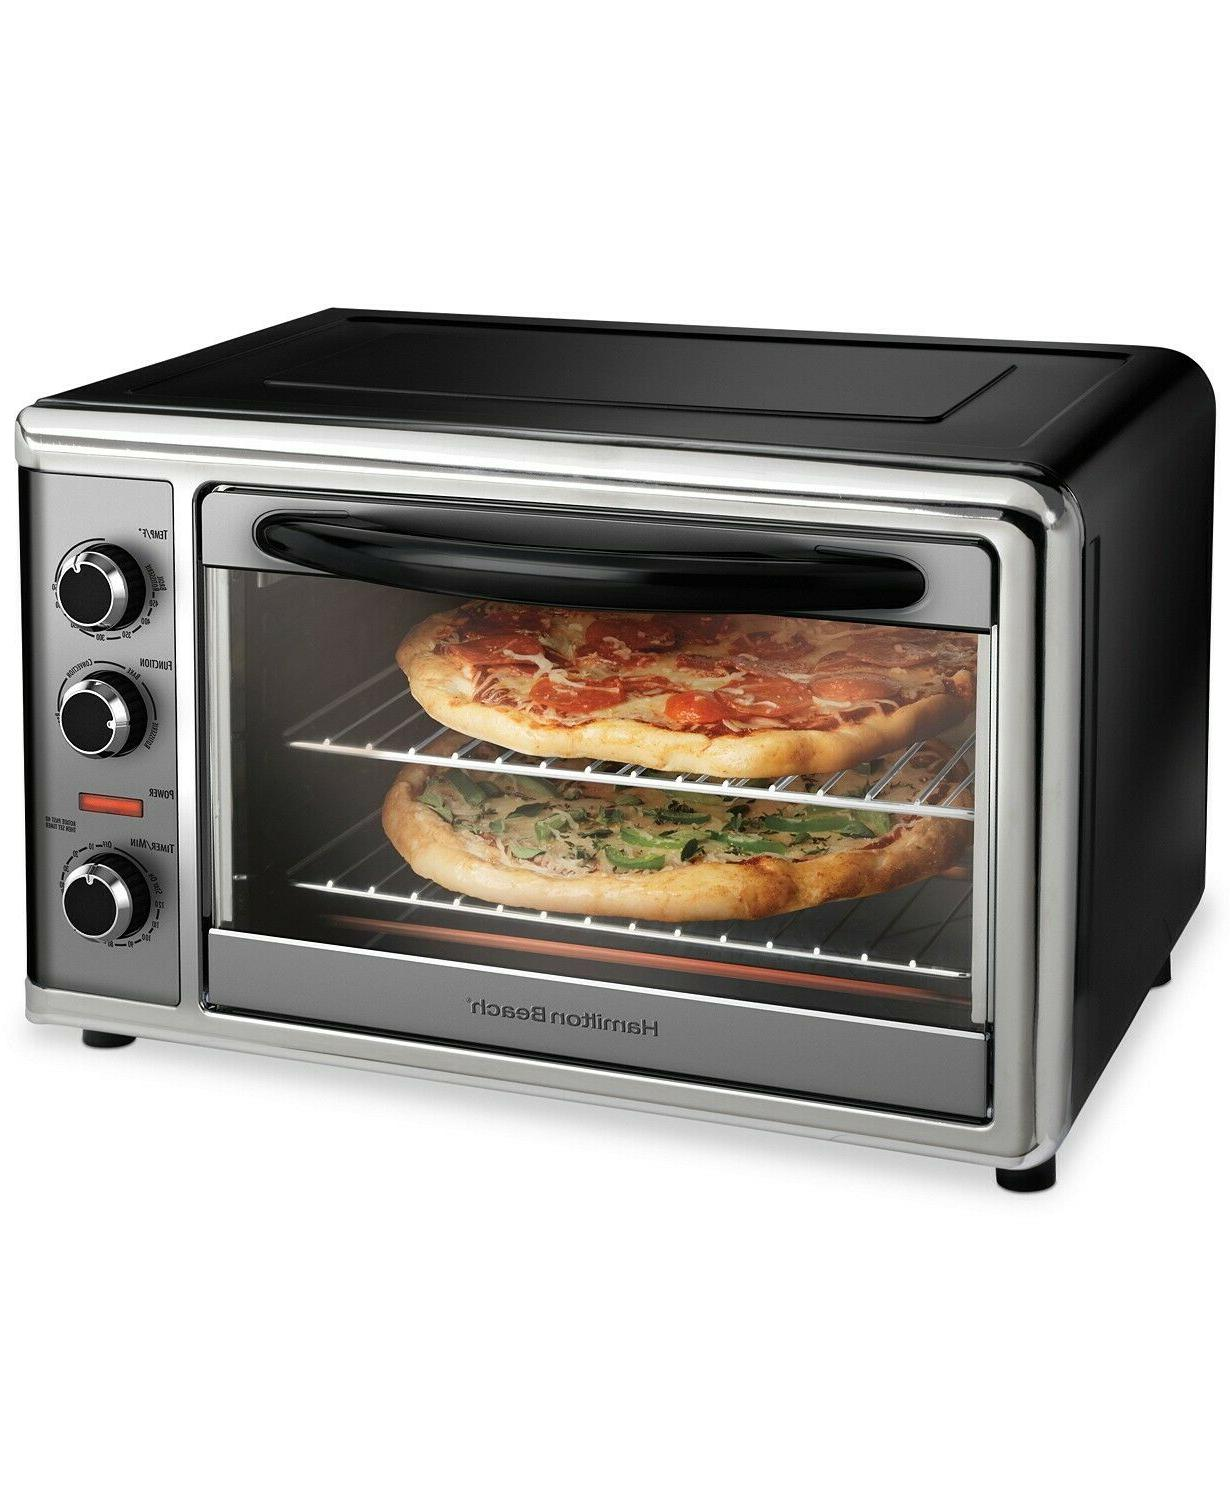 31100 countertop oven with convection and rotisserie